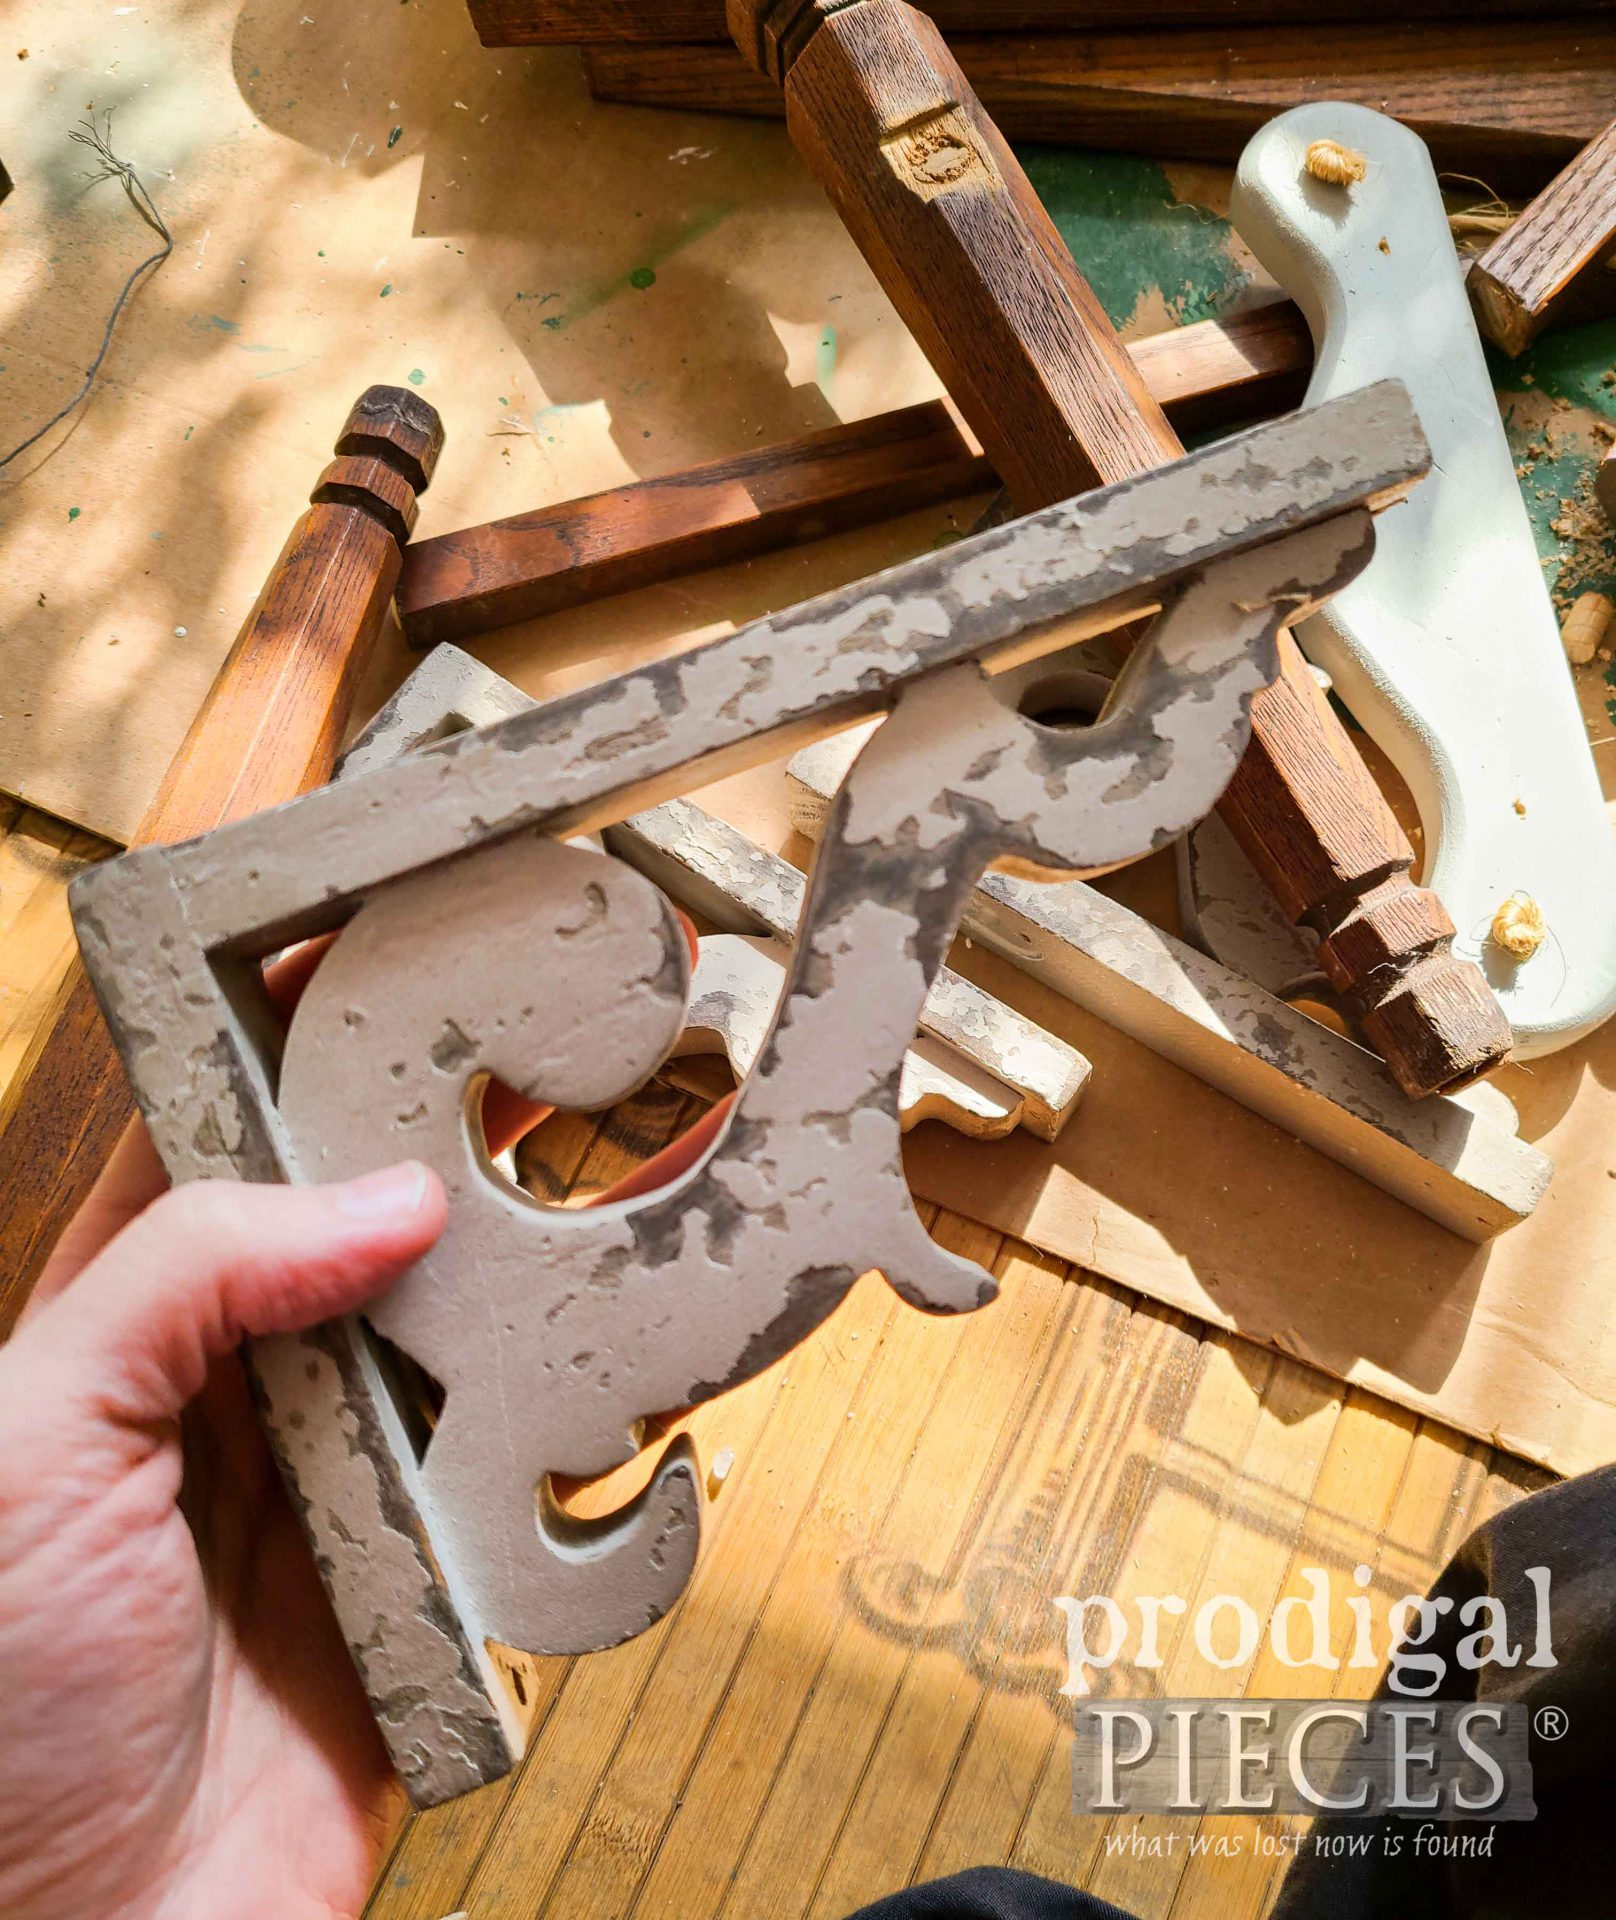 Chippy Painted Corbel for Salvaged Art Signs by Prodigal Pieces | prodigalpieces.com